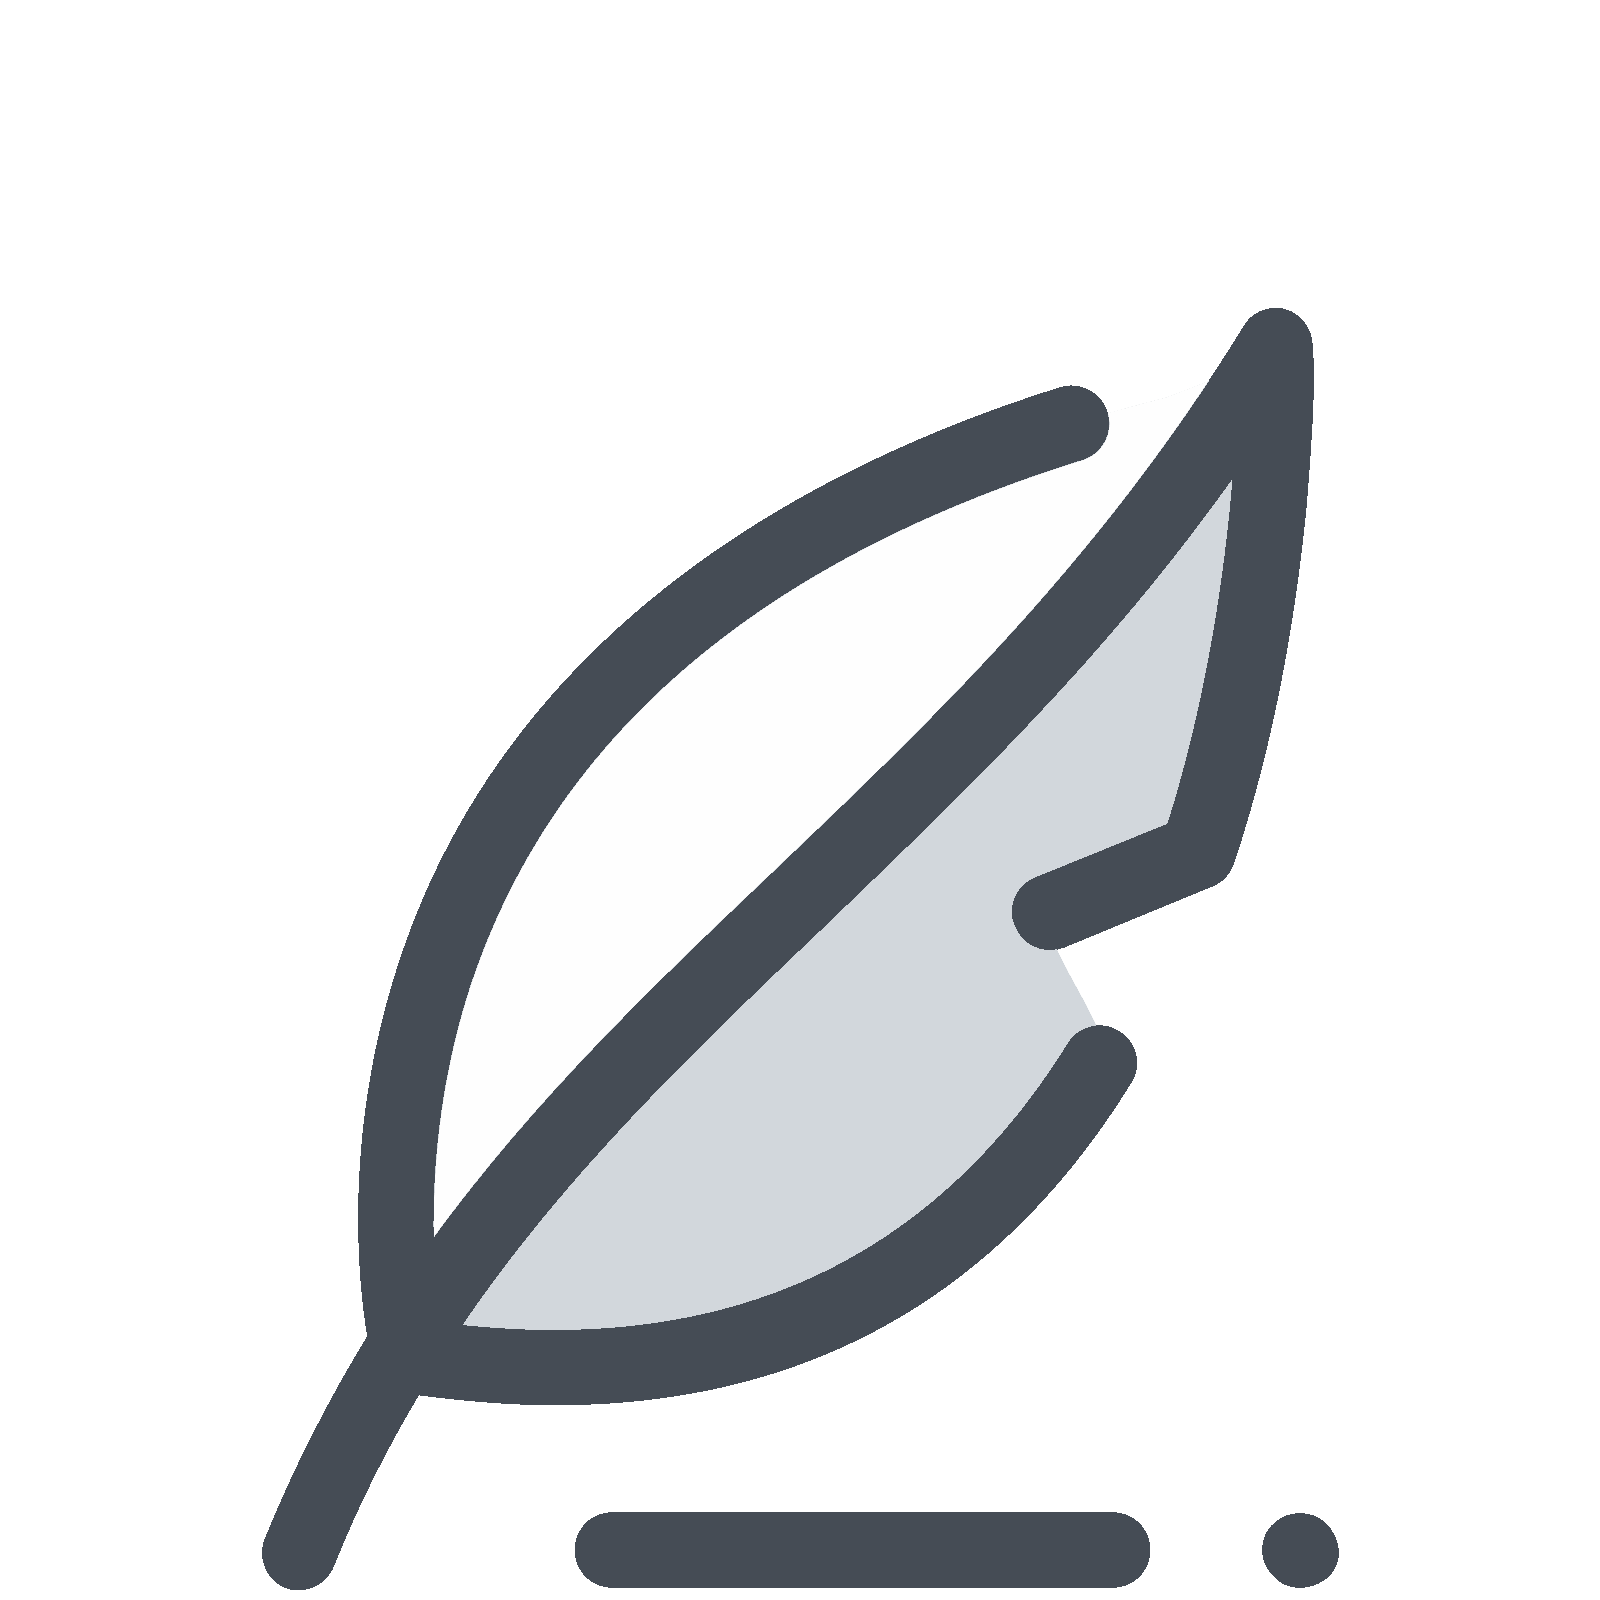 png black and white stock Pen icon free download. Quill vector.